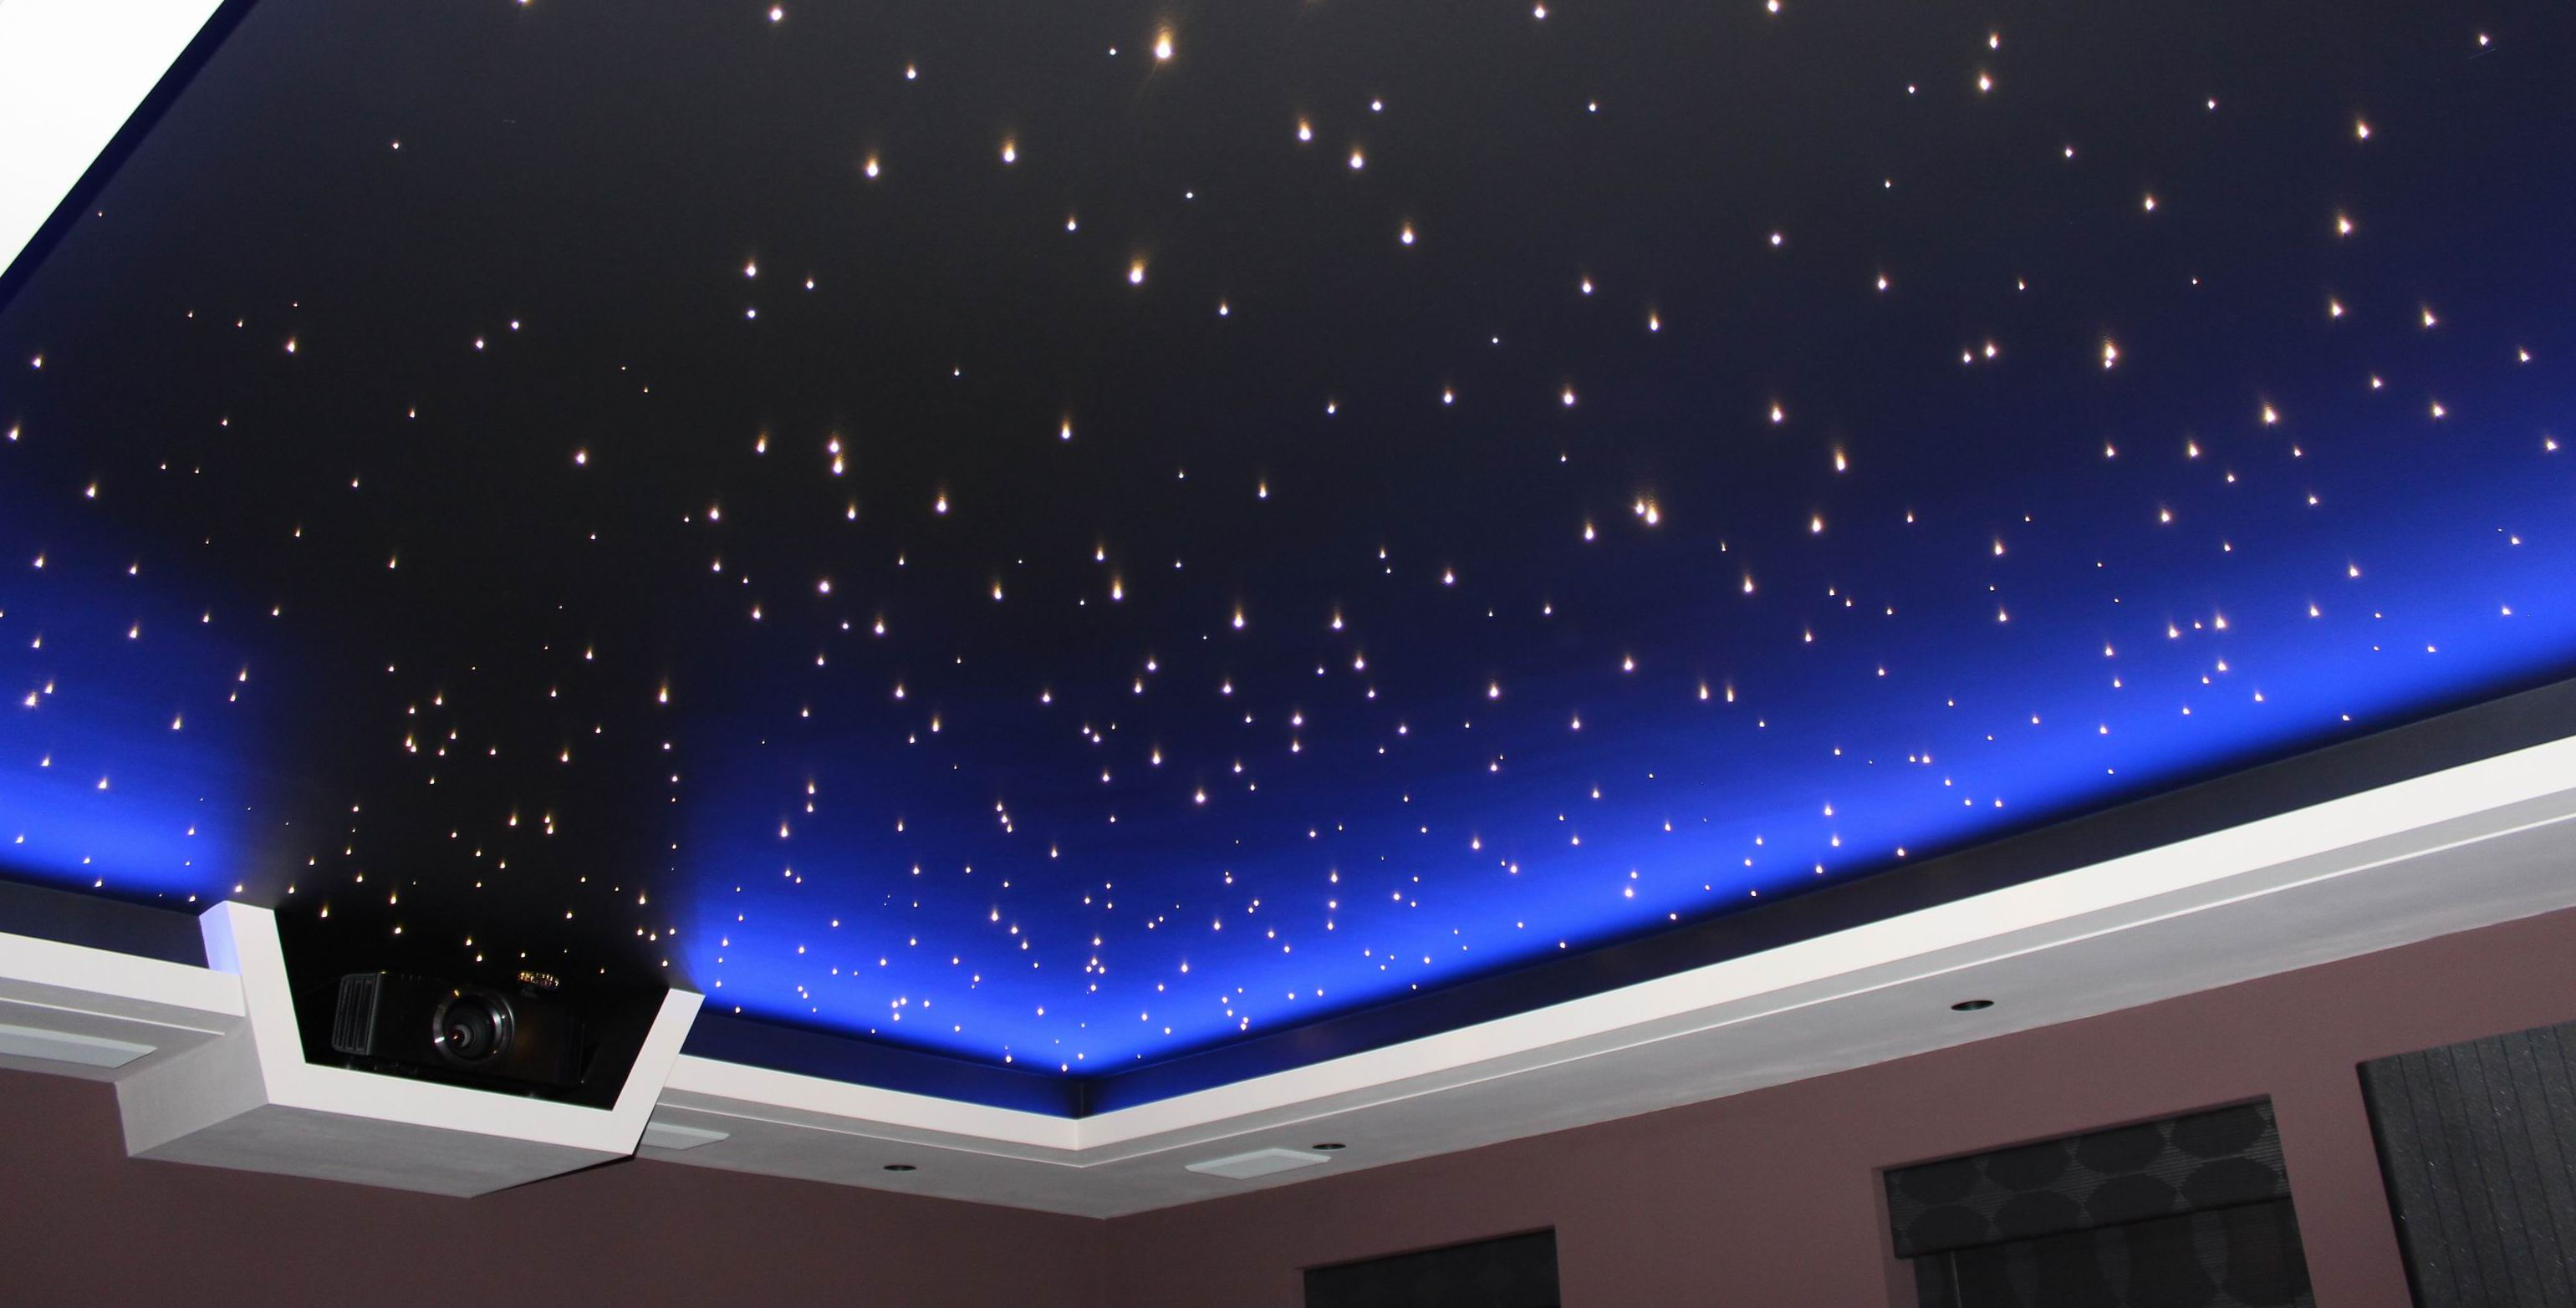 Fiber optic lighting ceiling panels iron blog 10 facts about star led lights ceiling dailygadgetfo Image collections